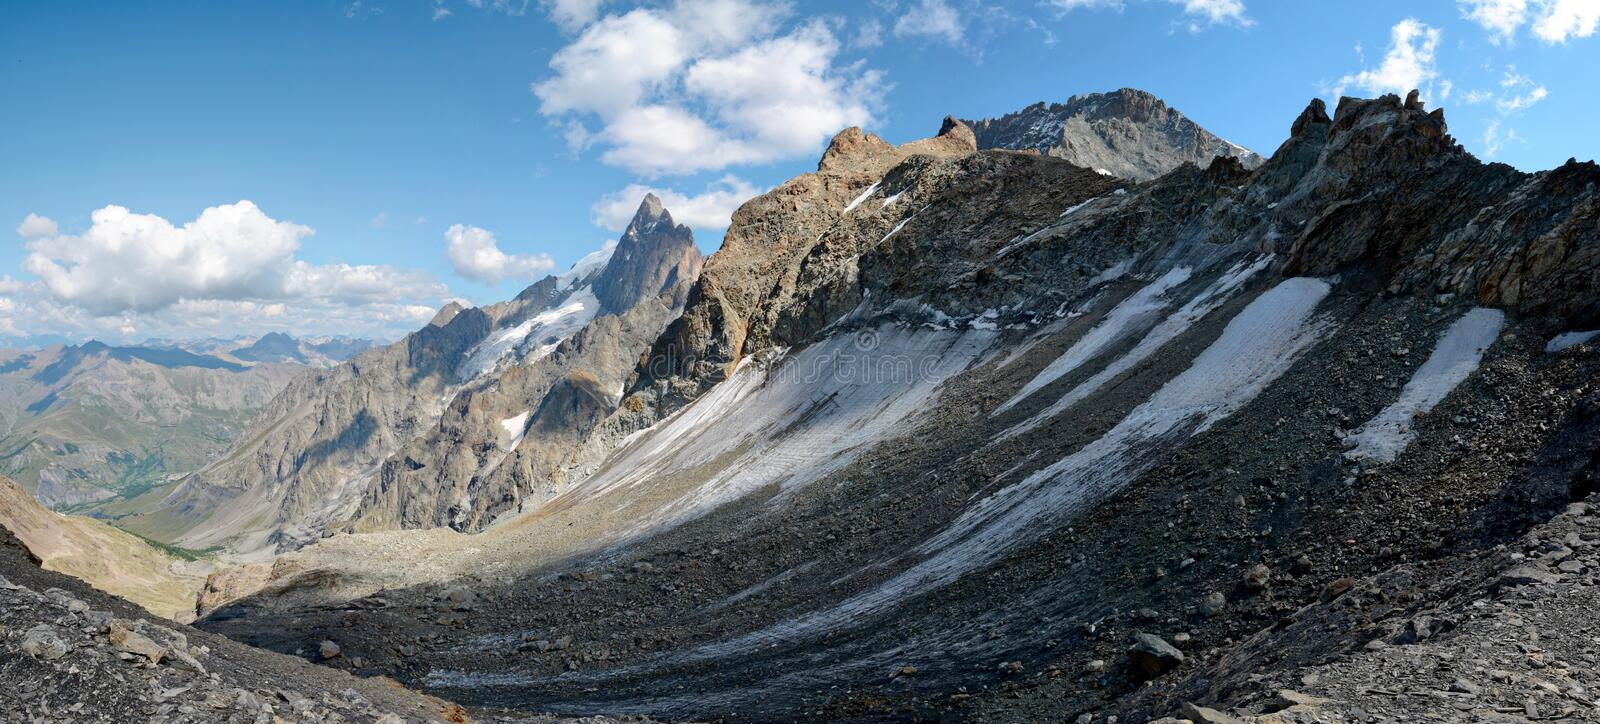 La Meije in the Ecrins National Park stock photography